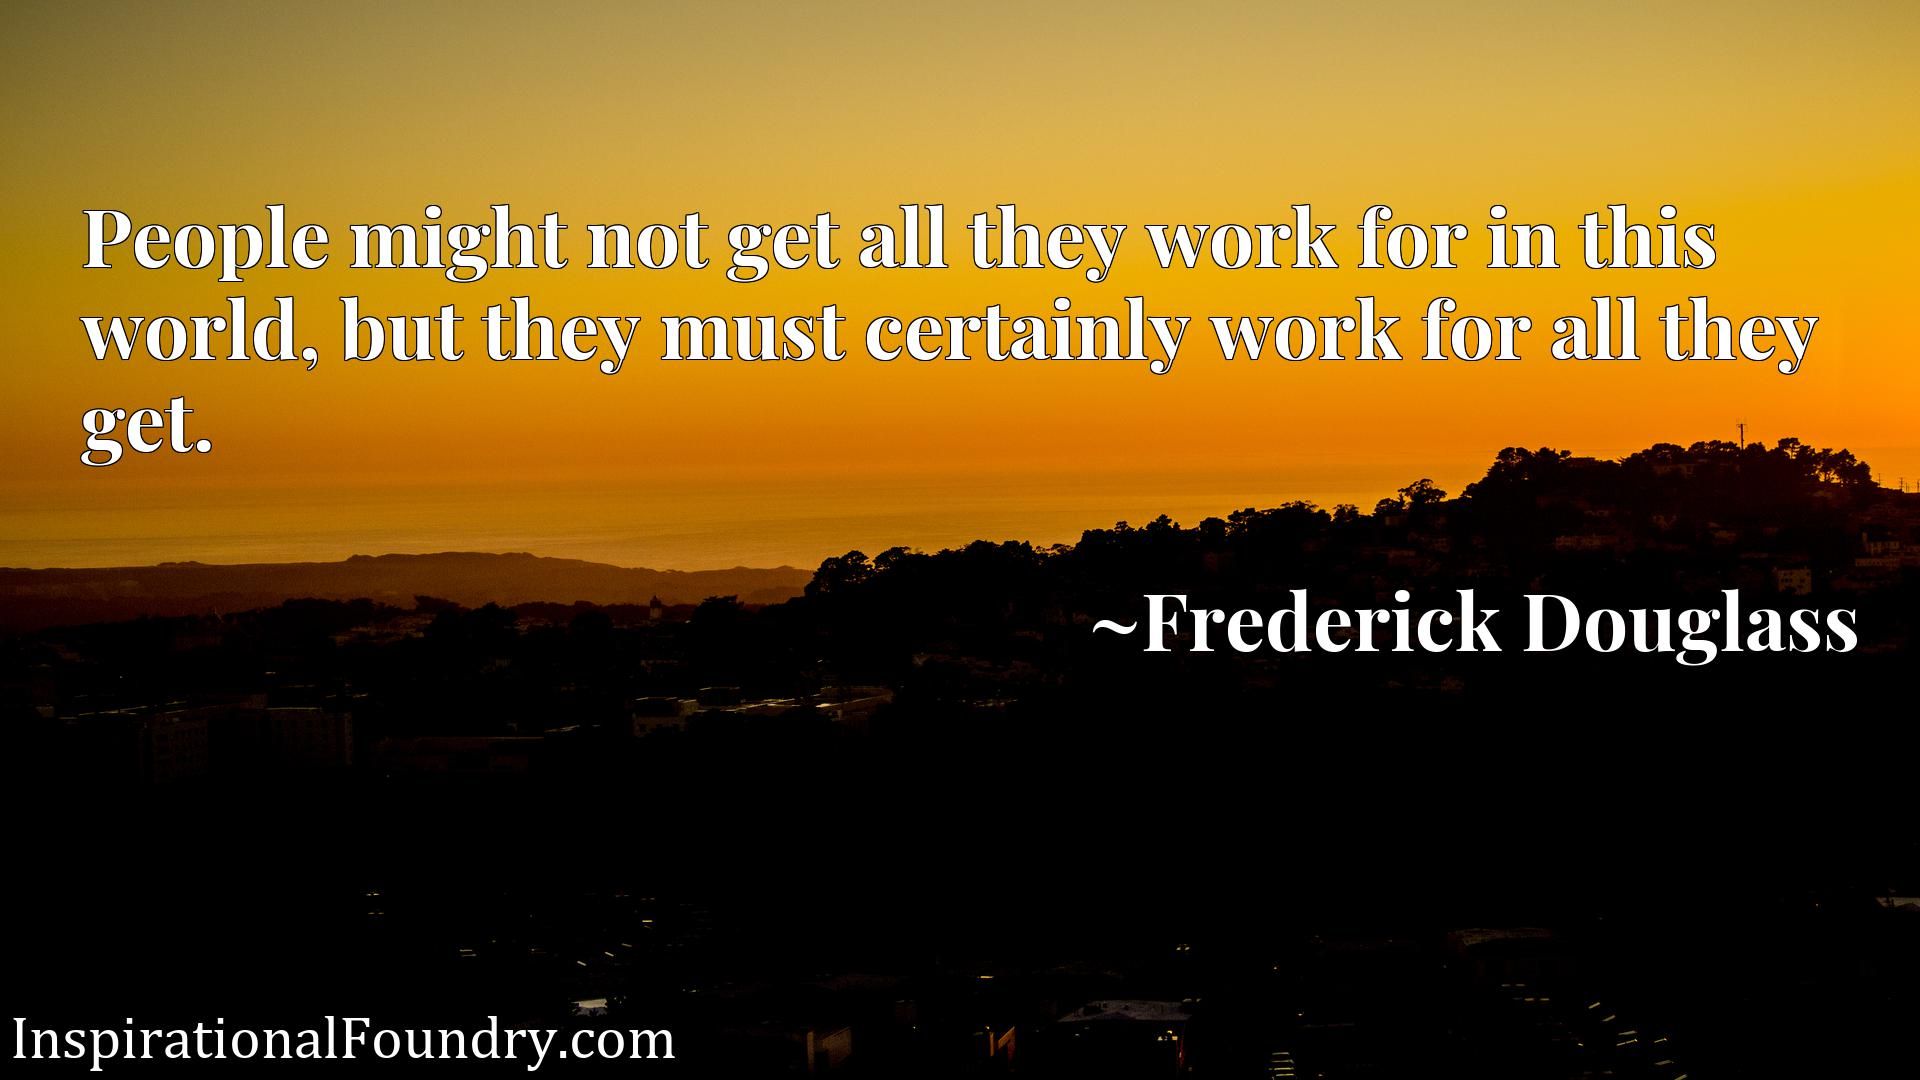 People might not get all they work for in this world, but they must certainly work for all they get.